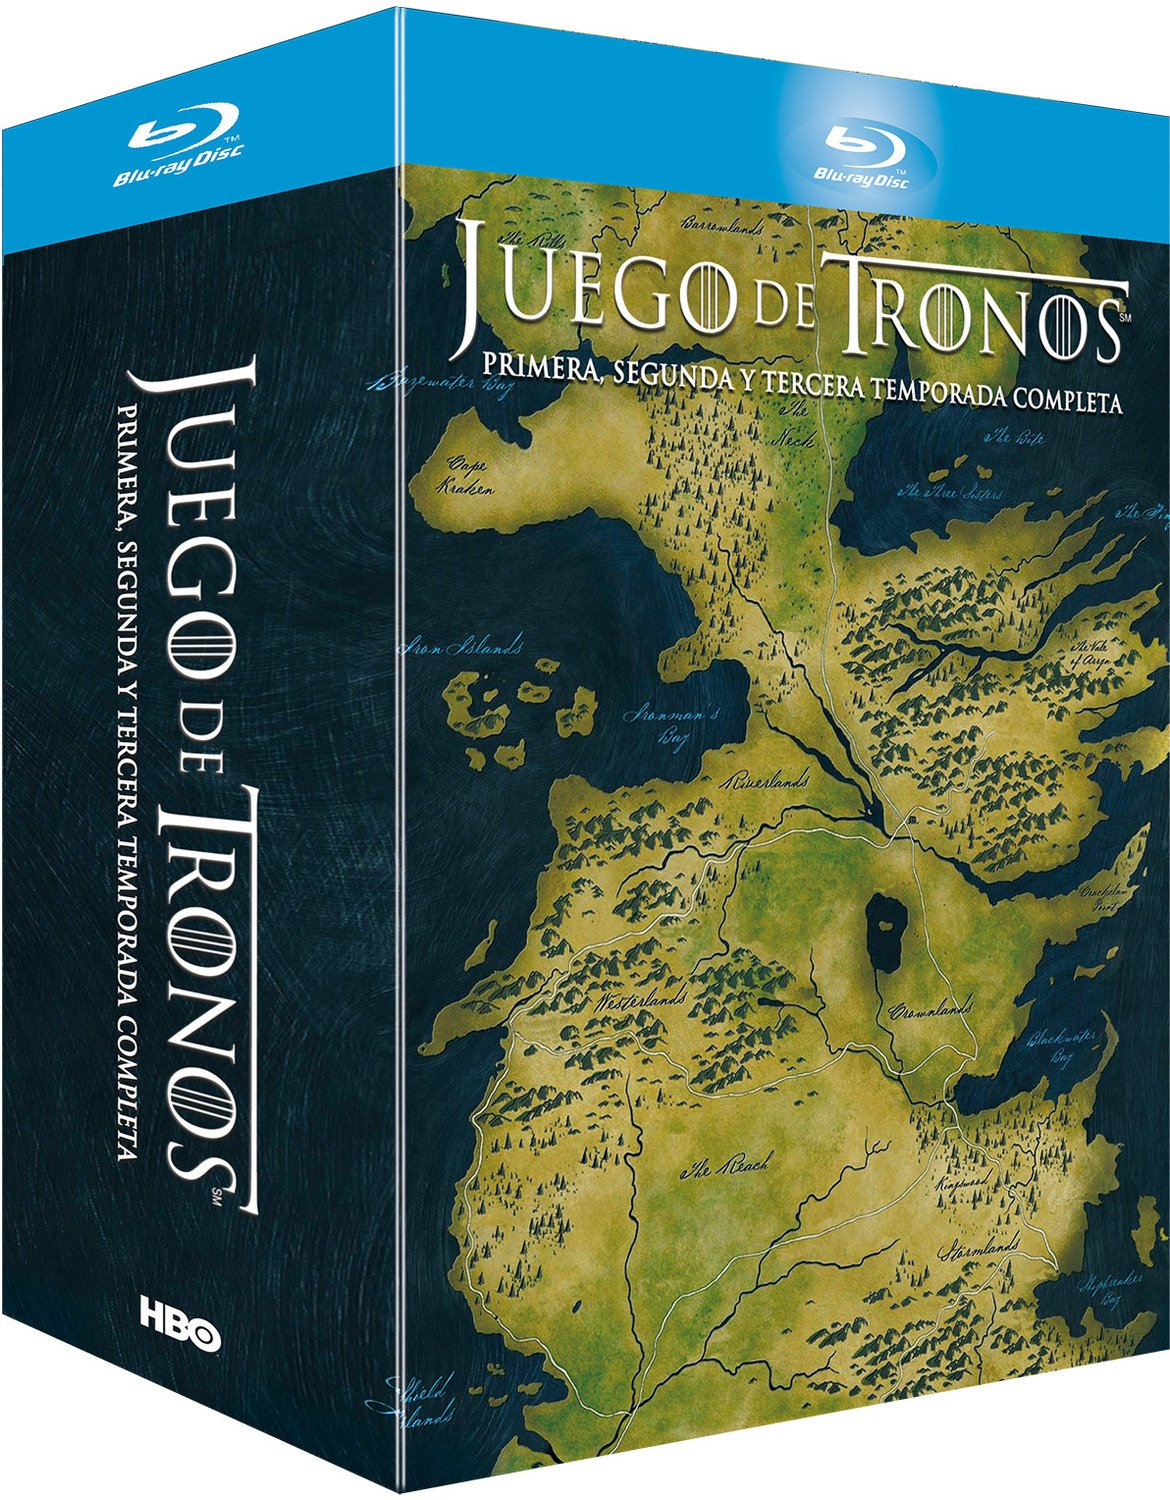 Juego De Tronos - Temporadas 1+2+3 Digipack Blu-ray: Amazon.es ...